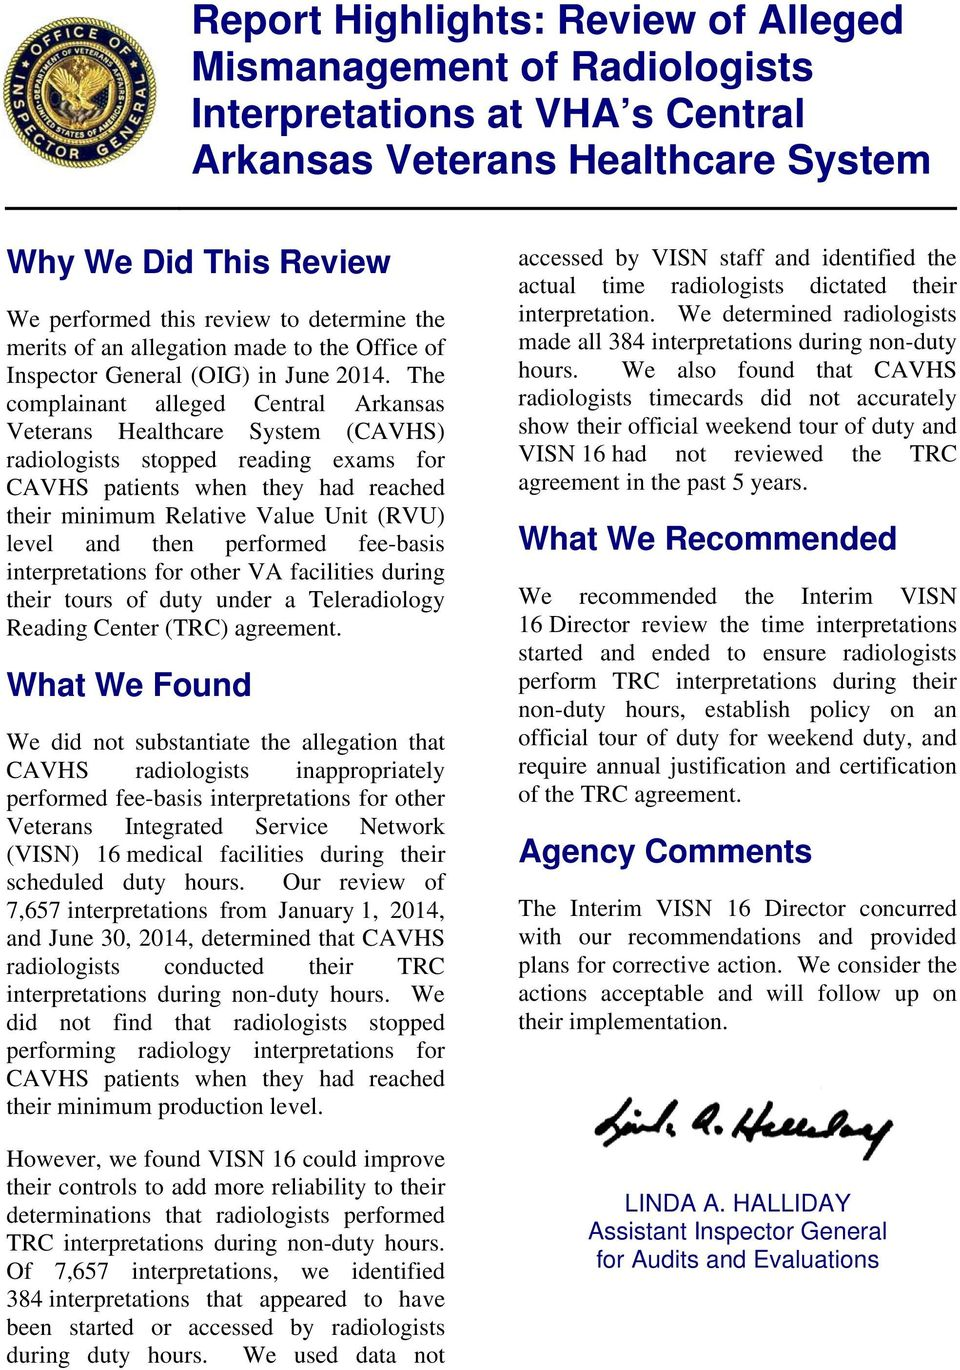 The complainant alleged Central Arkansas Veterans Healthcare System (CAVHS) radiologists stopped reading exams for CAVHS patients when they had reached their minimum Relative Value Unit (RVU) level